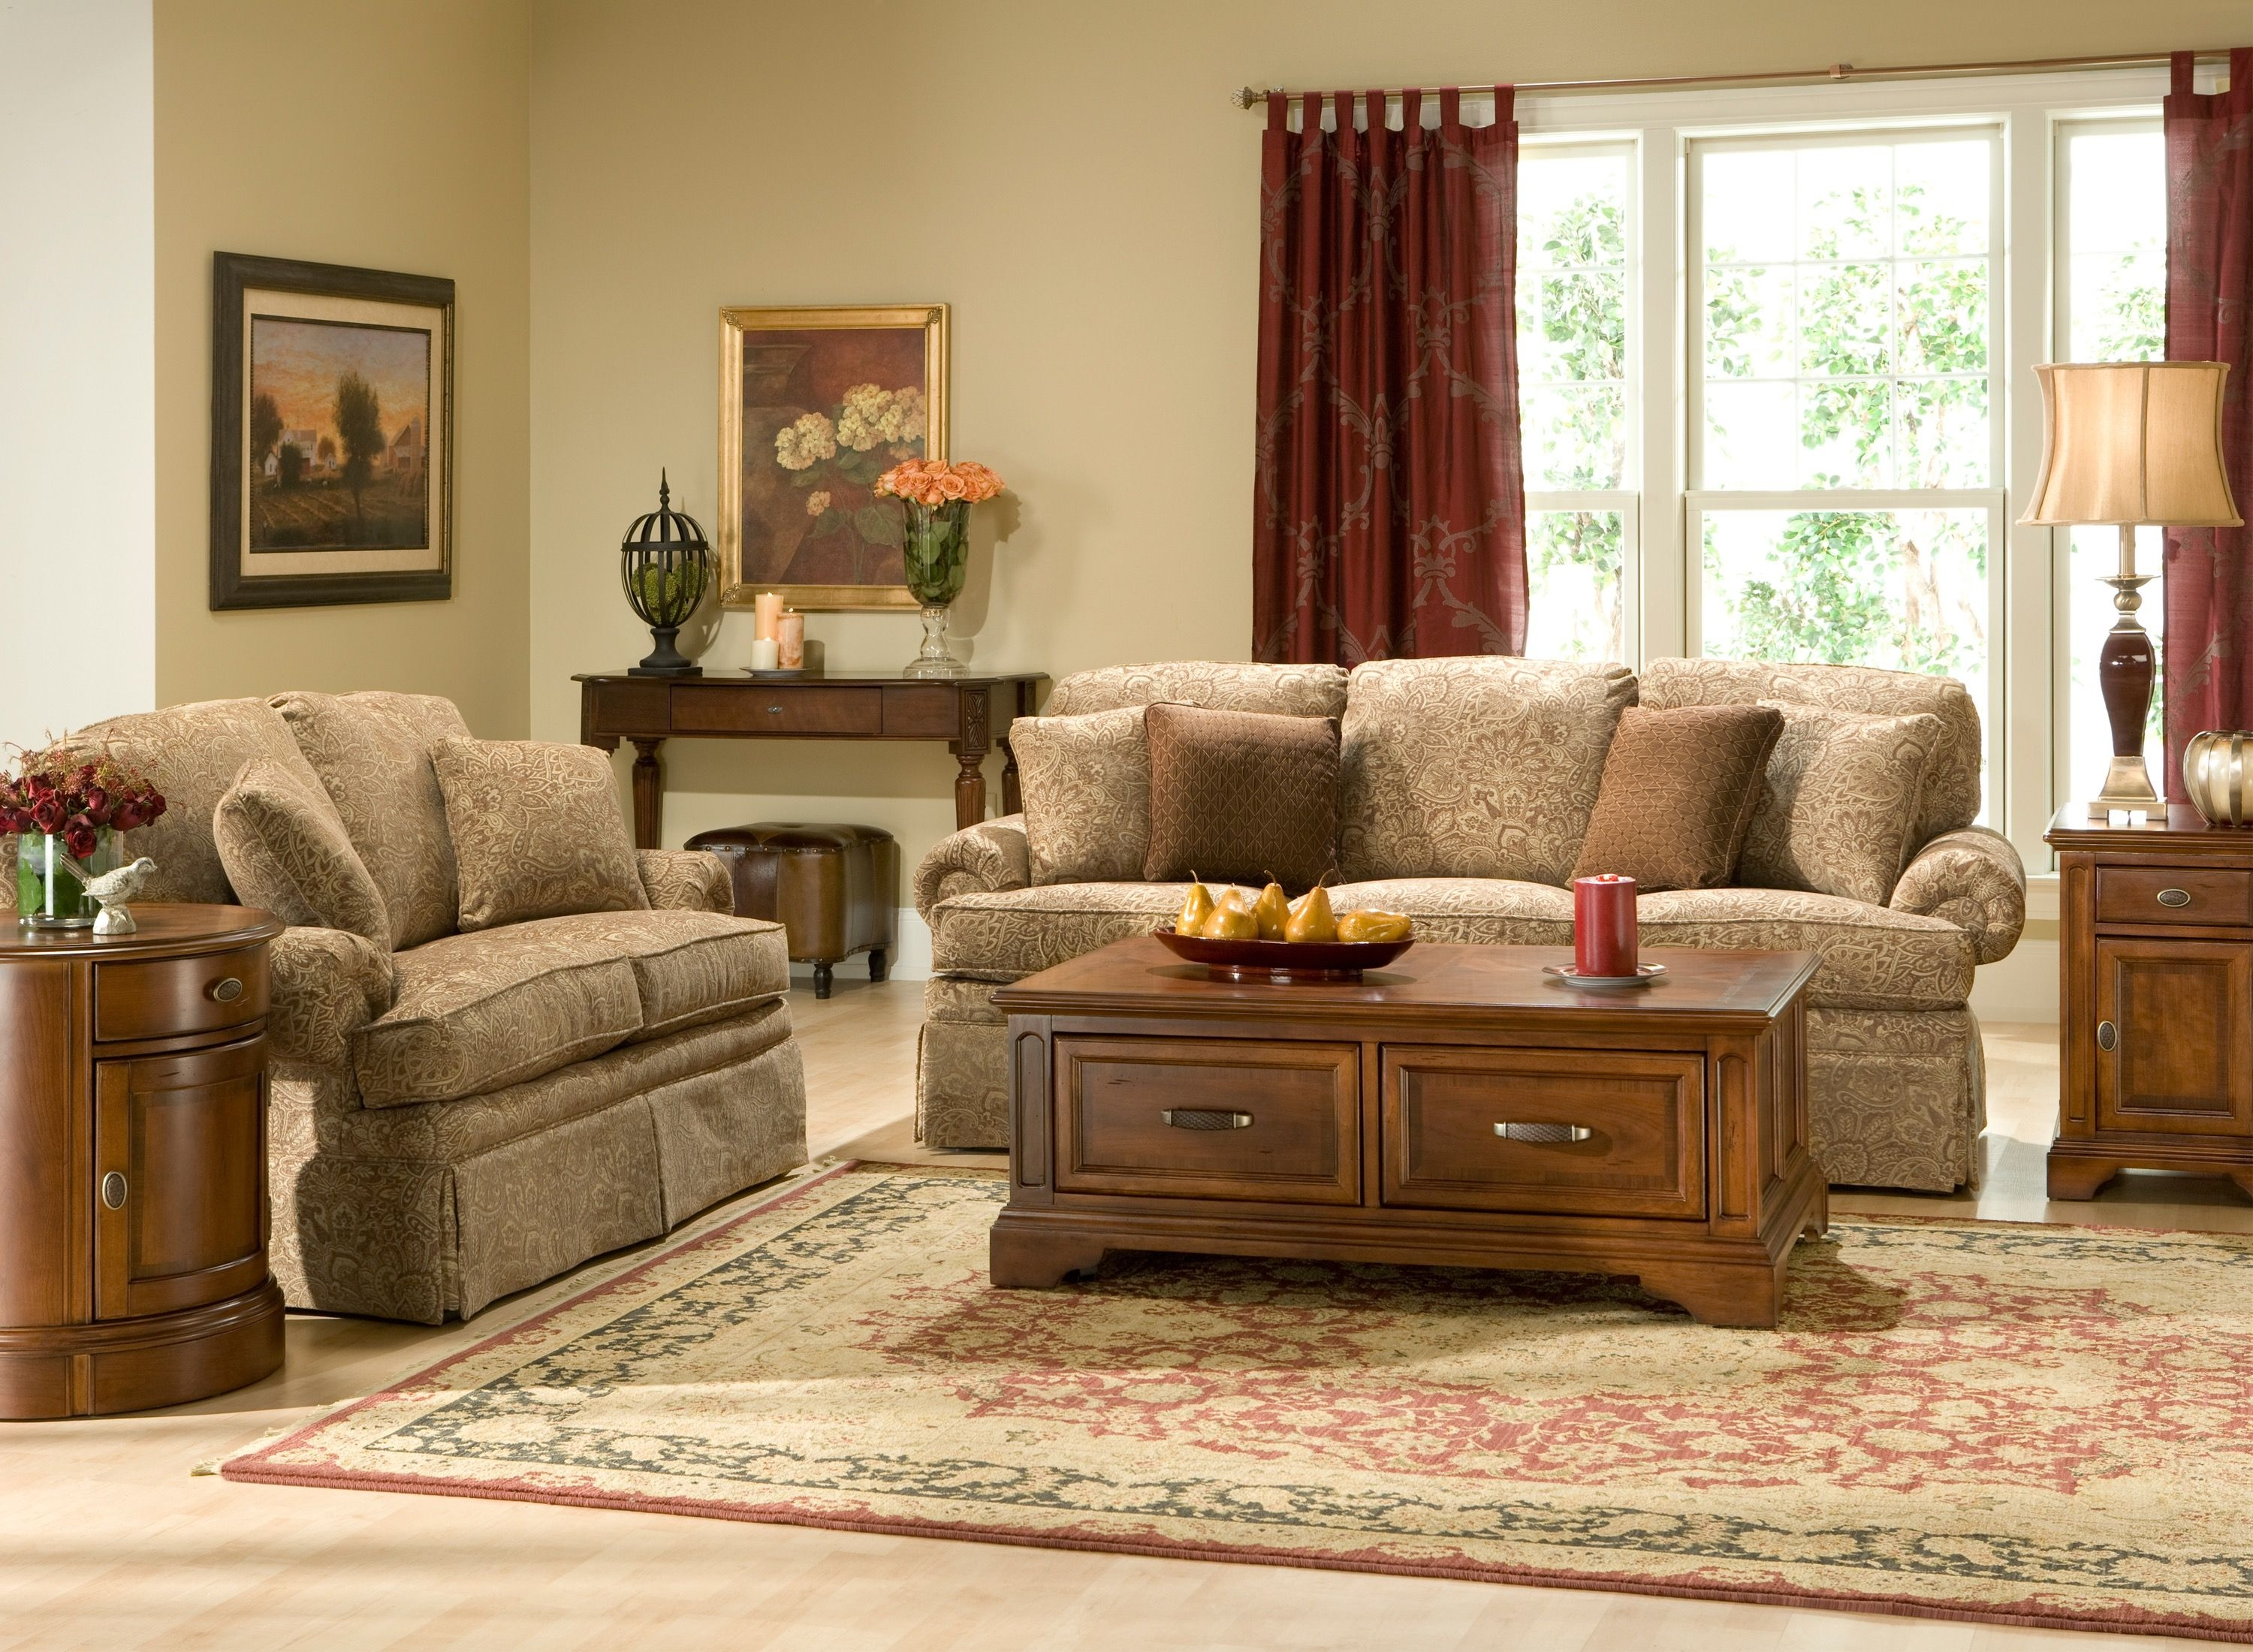 Furniture Admirable Raymour And Flanigan Coffee Tables For Best Living Room Furniture Ideas